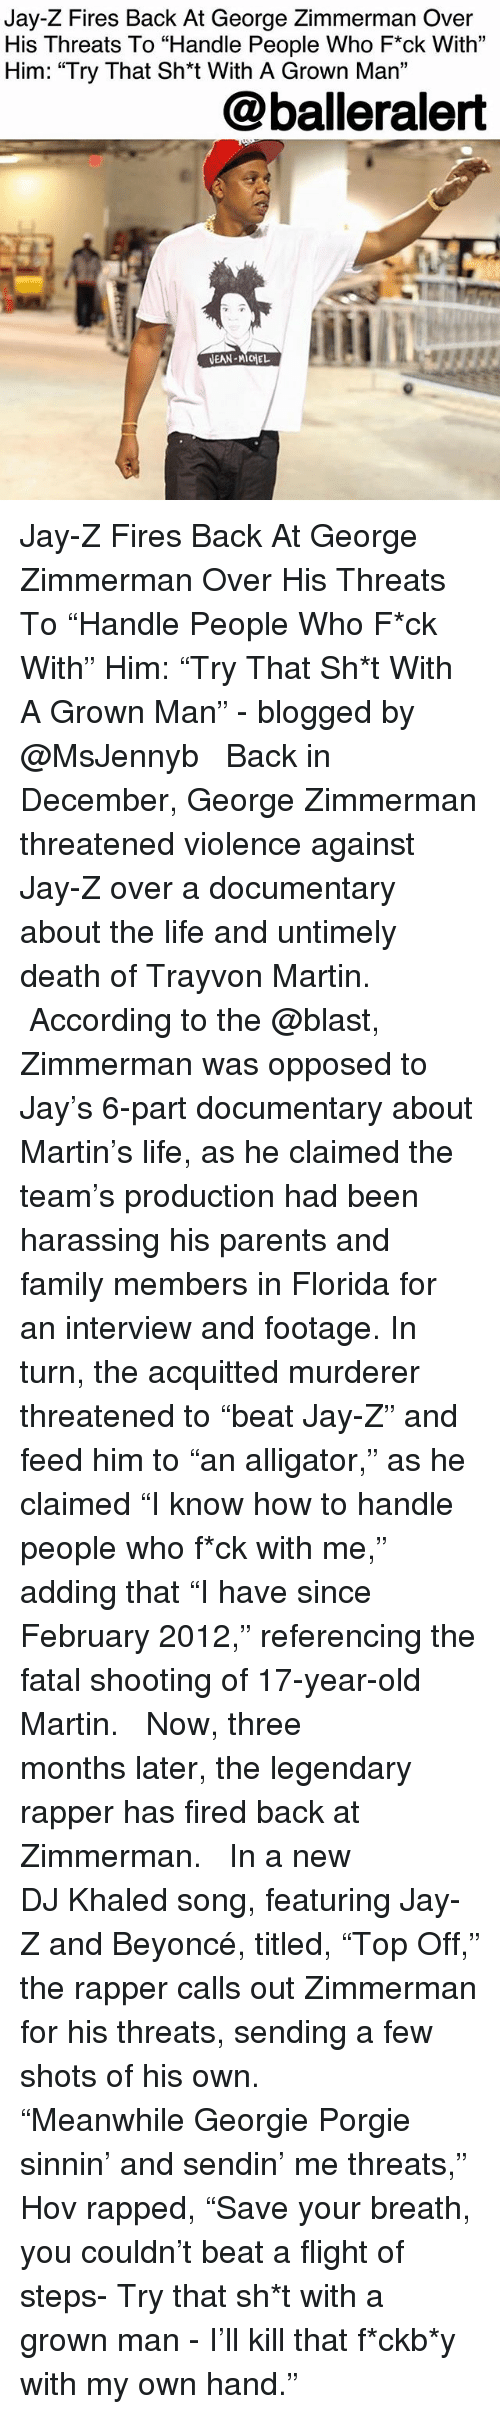 "rapped: Jay-Z Fires Back At George Zimmerman Over  His Threats To ""Handle People Who F*ck With""  Him: ""Try That Sh*t With A Grown Ma""  31  @balleralert Jay-Z Fires Back At George Zimmerman Over His Threats To ""Handle People Who F*ck With"" Him: ""Try That Sh*t With A Grown Man"" - blogged by @MsJennyb ⠀⠀⠀⠀⠀⠀⠀ ⠀⠀⠀⠀⠀⠀⠀ Back in December, George Zimmerman threatened violence against Jay-Z over a documentary about the life and untimely death of Trayvon Martin. ⠀⠀⠀⠀⠀⠀⠀ ⠀⠀⠀⠀⠀⠀⠀ According to the @blast, Zimmerman was opposed to Jay's 6-part documentary about Martin's life, as he claimed the team's production had been harassing his parents and family members in Florida for an interview and footage. In turn, the acquitted murderer threatened to ""beat Jay-Z"" and feed him to ""an alligator,"" as he claimed ""I know how to handle people who f*ck with me,"" adding that ""I have since February 2012,"" referencing the fatal shooting of 17-year-old Martin. ⠀⠀⠀⠀⠀⠀⠀ ⠀⠀⠀⠀⠀⠀⠀ Now, three months later, the legendary rapper has fired back at Zimmerman. ⠀⠀⠀⠀⠀⠀⠀ ⠀⠀⠀⠀⠀⠀⠀ In a new DJ Khaled song, featuring Jay-Z and Beyoncé, titled, ""Top Off,"" the rapper calls out Zimmerman for his threats, sending a few shots of his own. ⠀⠀⠀⠀⠀⠀⠀ ⠀⠀⠀⠀⠀⠀⠀ ""Meanwhile Georgie Porgie sinnin' and sendin' me threats,"" Hov rapped, ""Save your breath, you couldn't beat a flight of steps- Try that sh*t with a grown man - I'll kill that f*ckb*y with my own hand."""